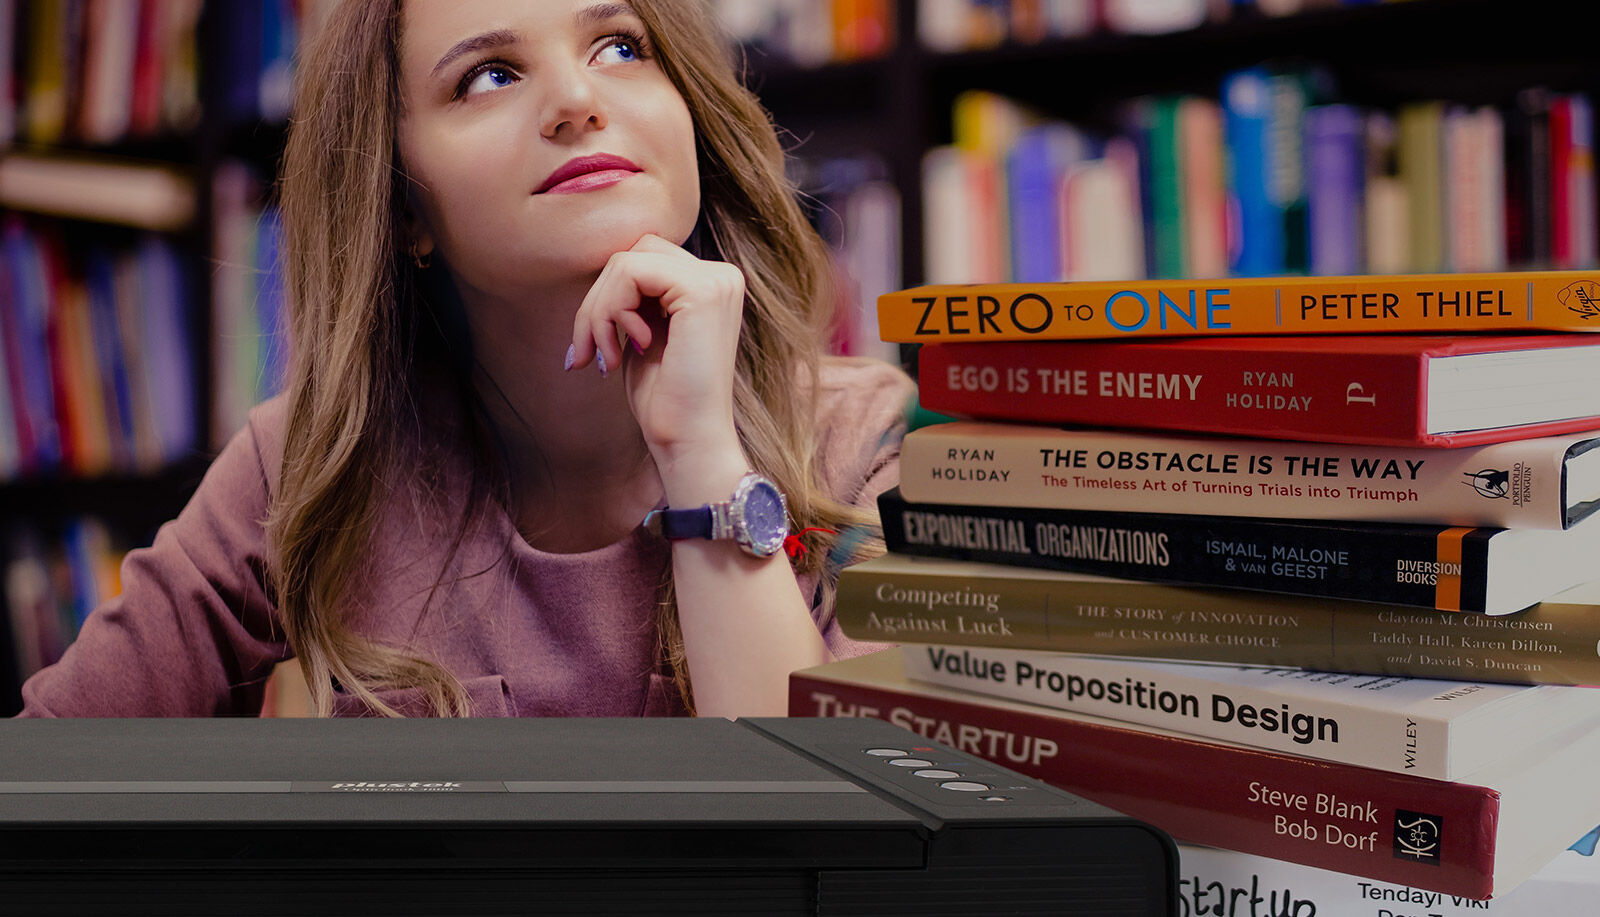 The Plustek OpticBook 4800 helps you create, scan and store thick books with ease.